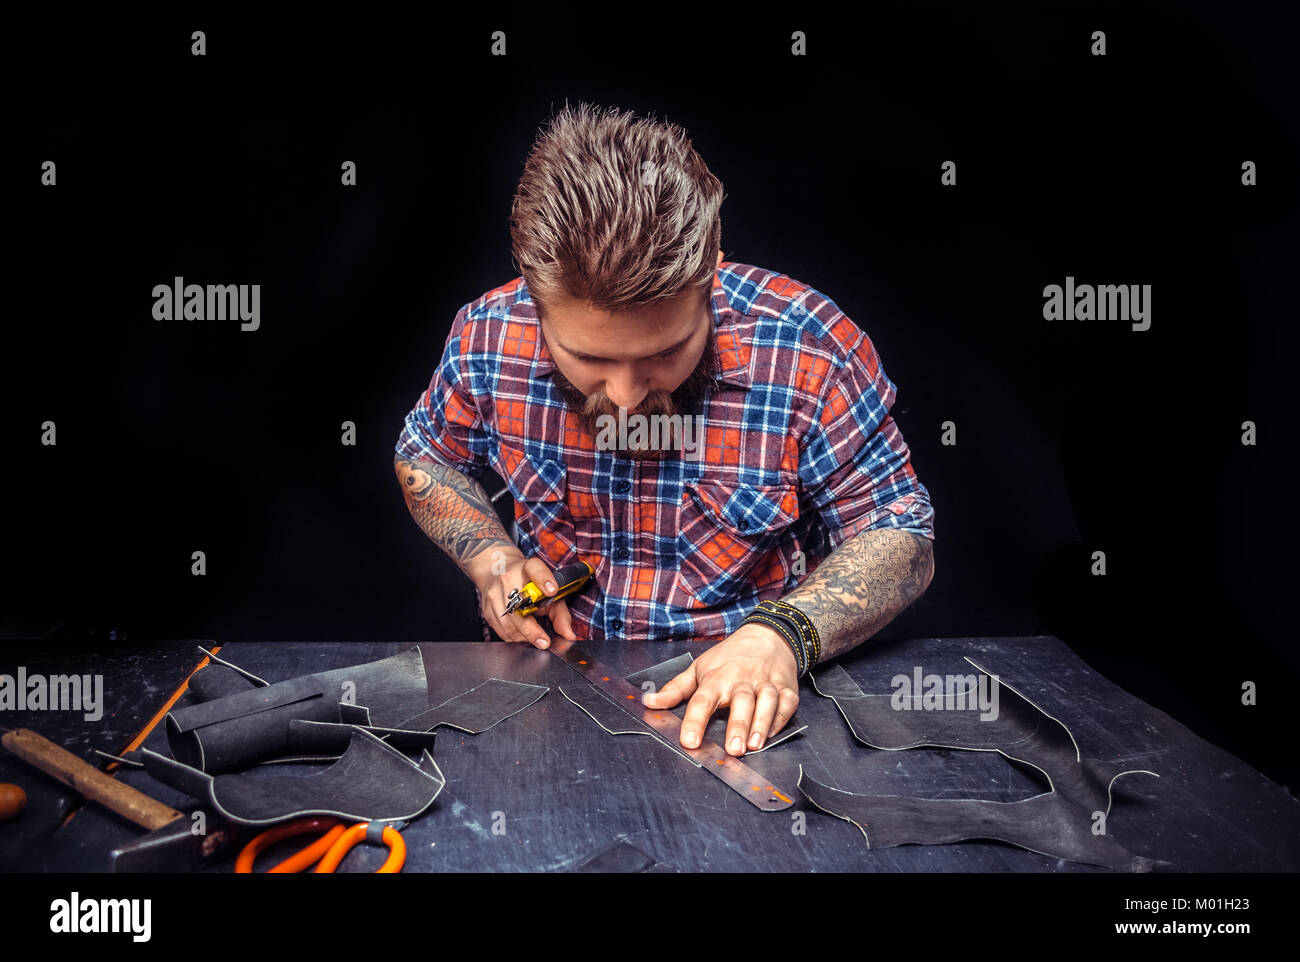 Leather Professional focusing on his work at his workshelf./Currier working on a new leather product at his workplace. Stock Photo